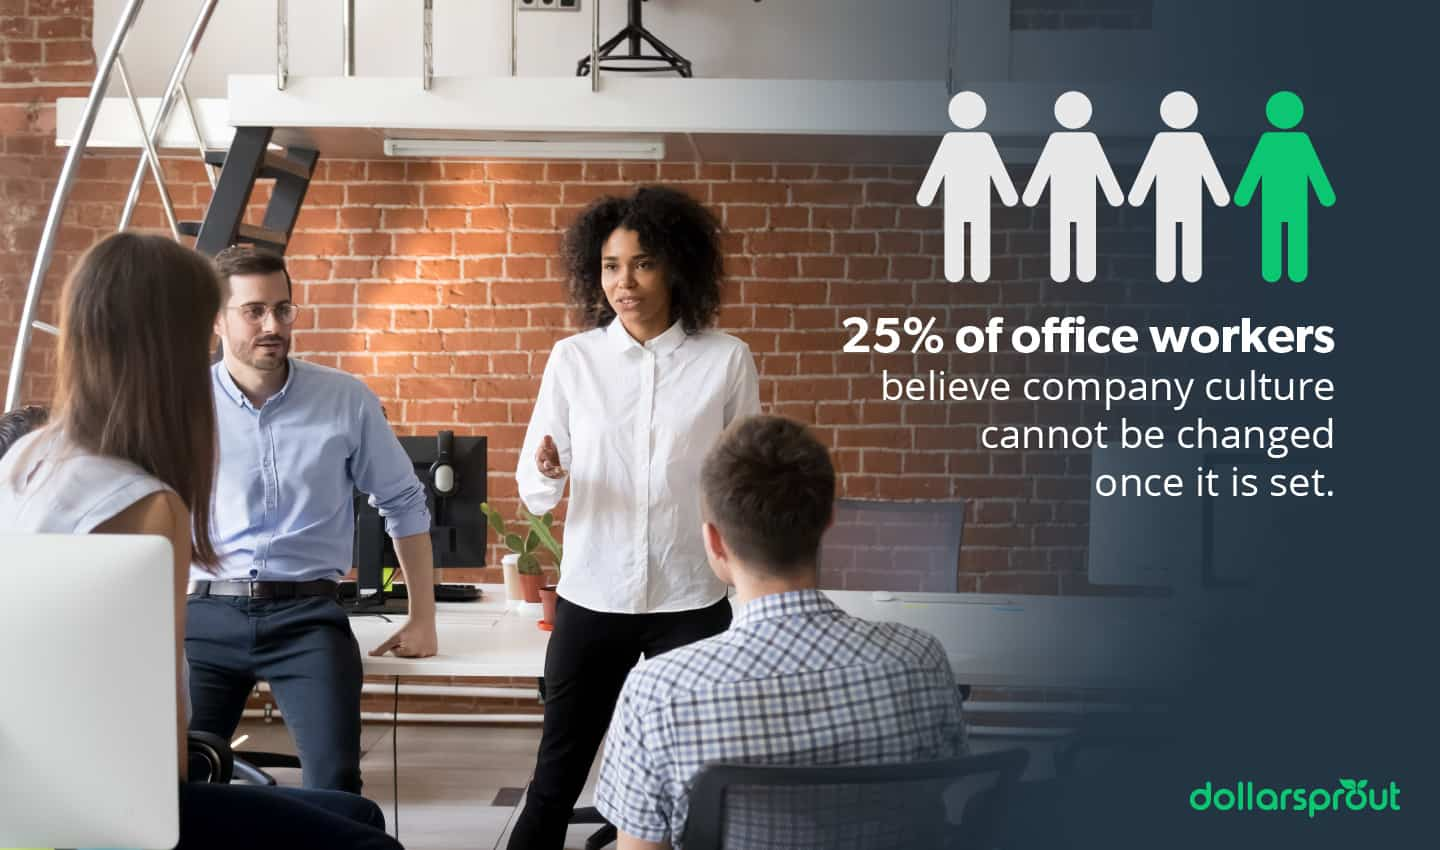 Office culture cannot be changed once set statistic